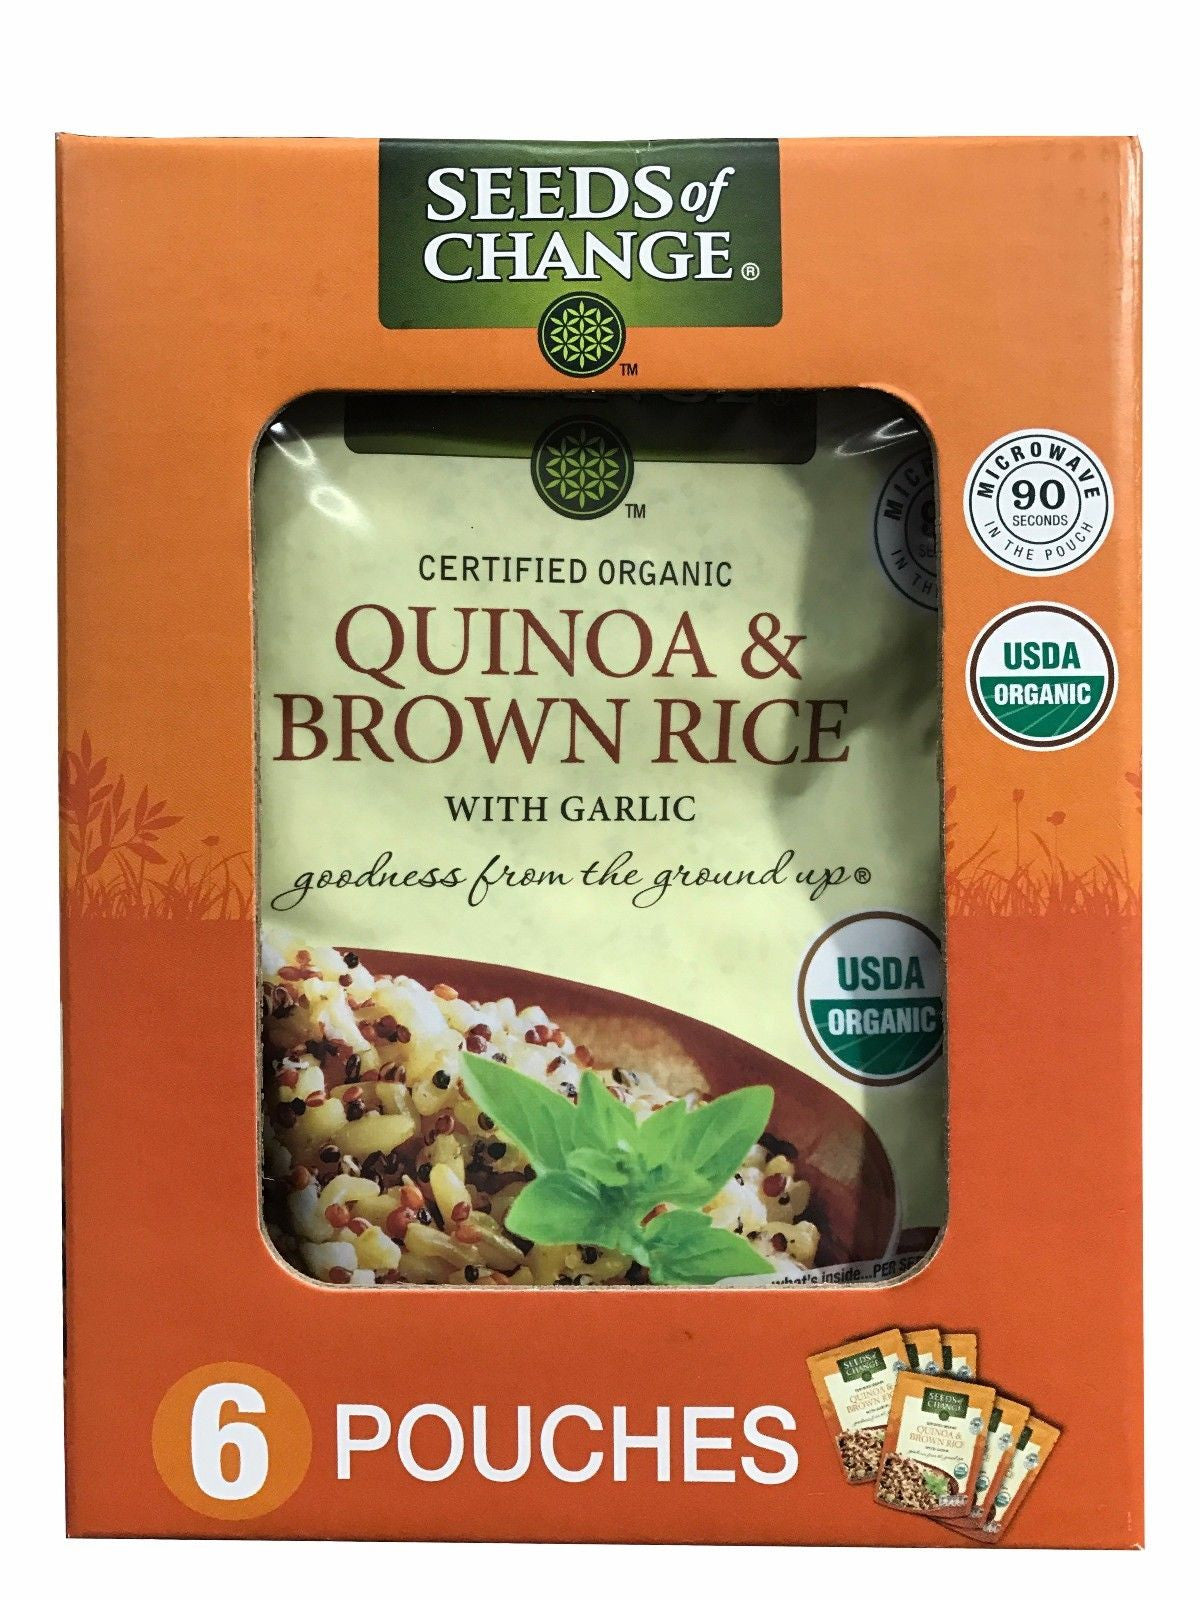 Seeds of Change Organic Quinoa & Brown Rice with Garlic 6 Pouches 3.2 LB